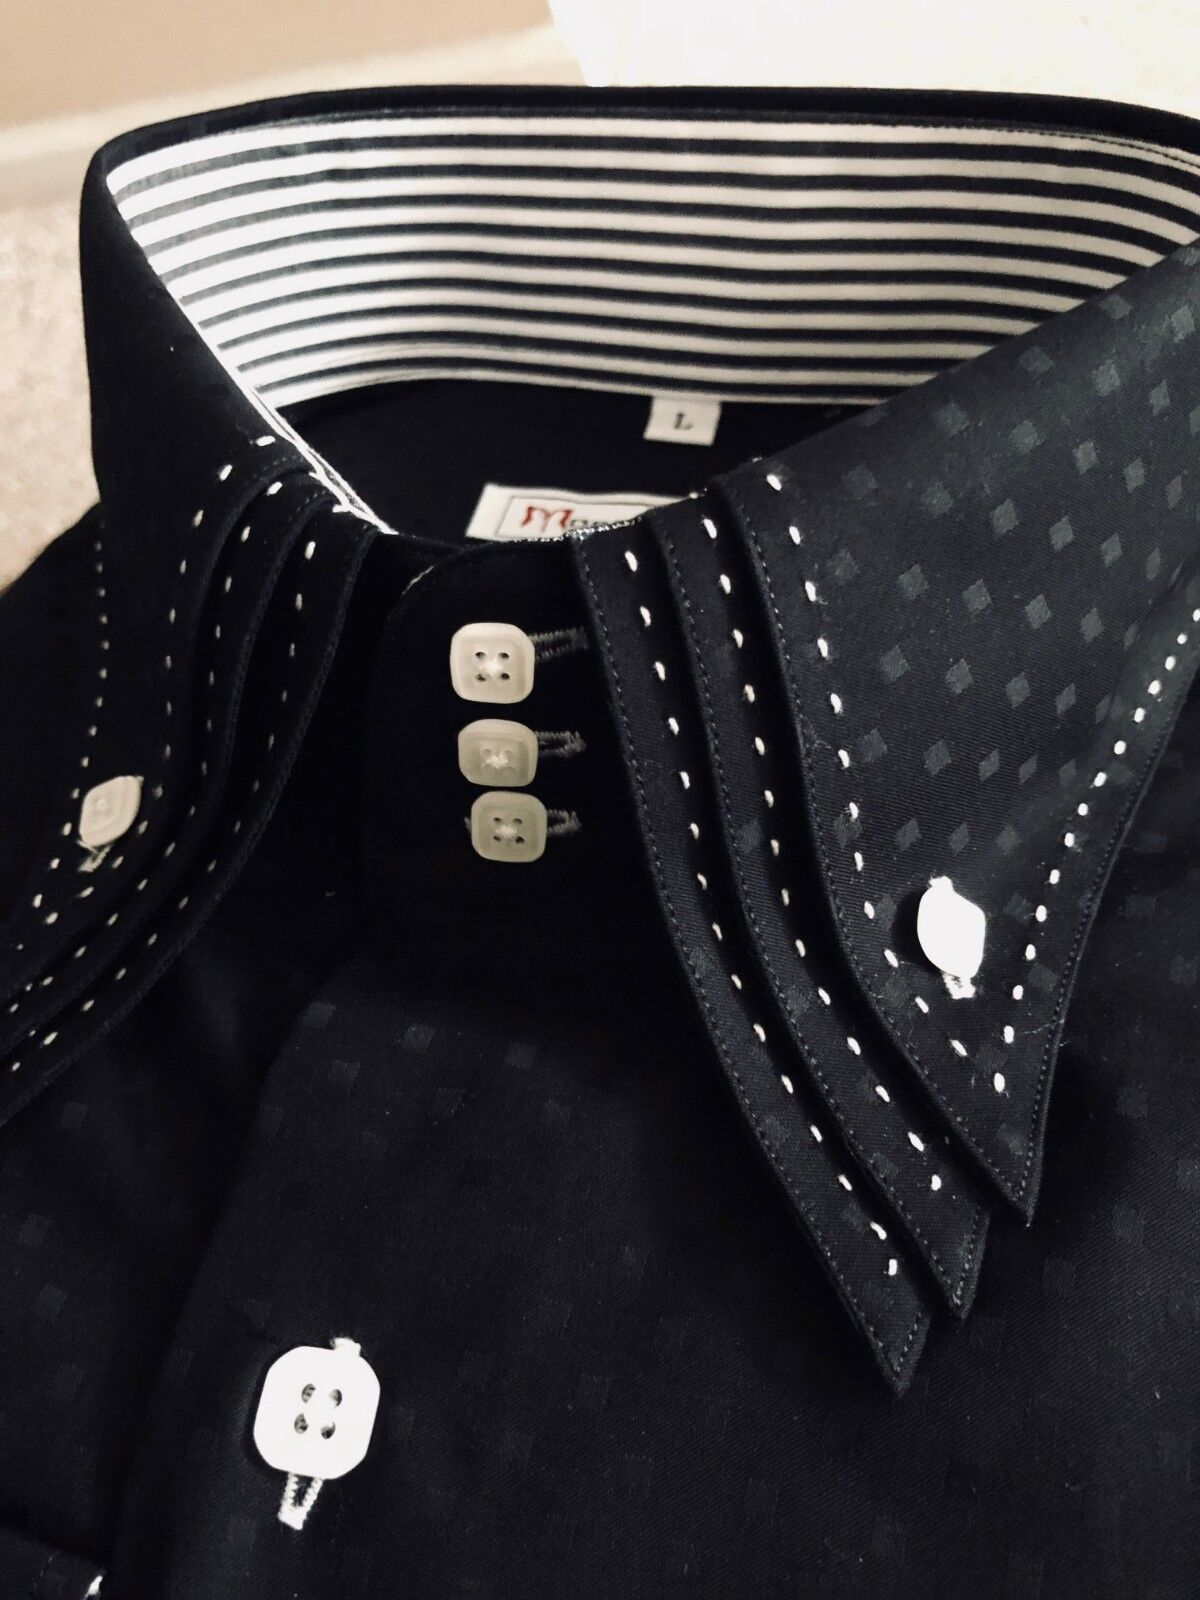 MorCouture Limited Edition Shadow Cube Triple Collar Shirt